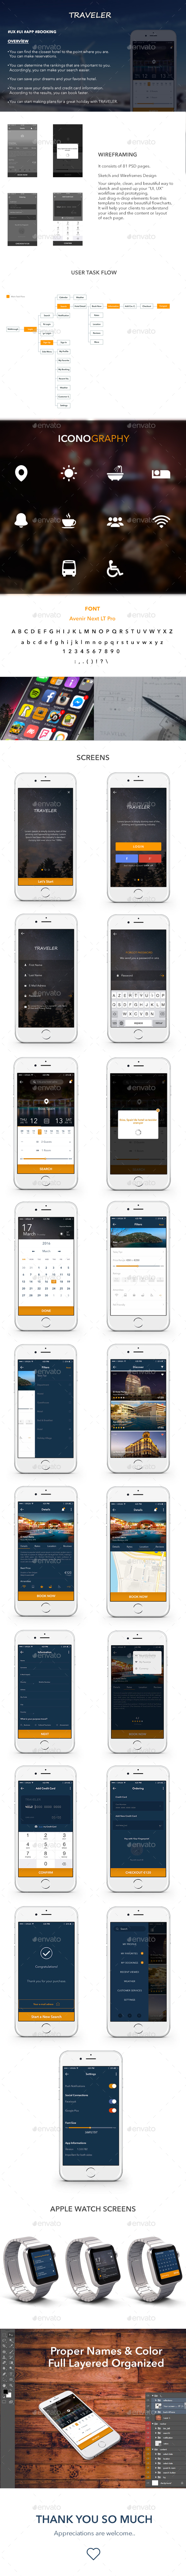 Booking Mobile App Ui (User Interfaces)